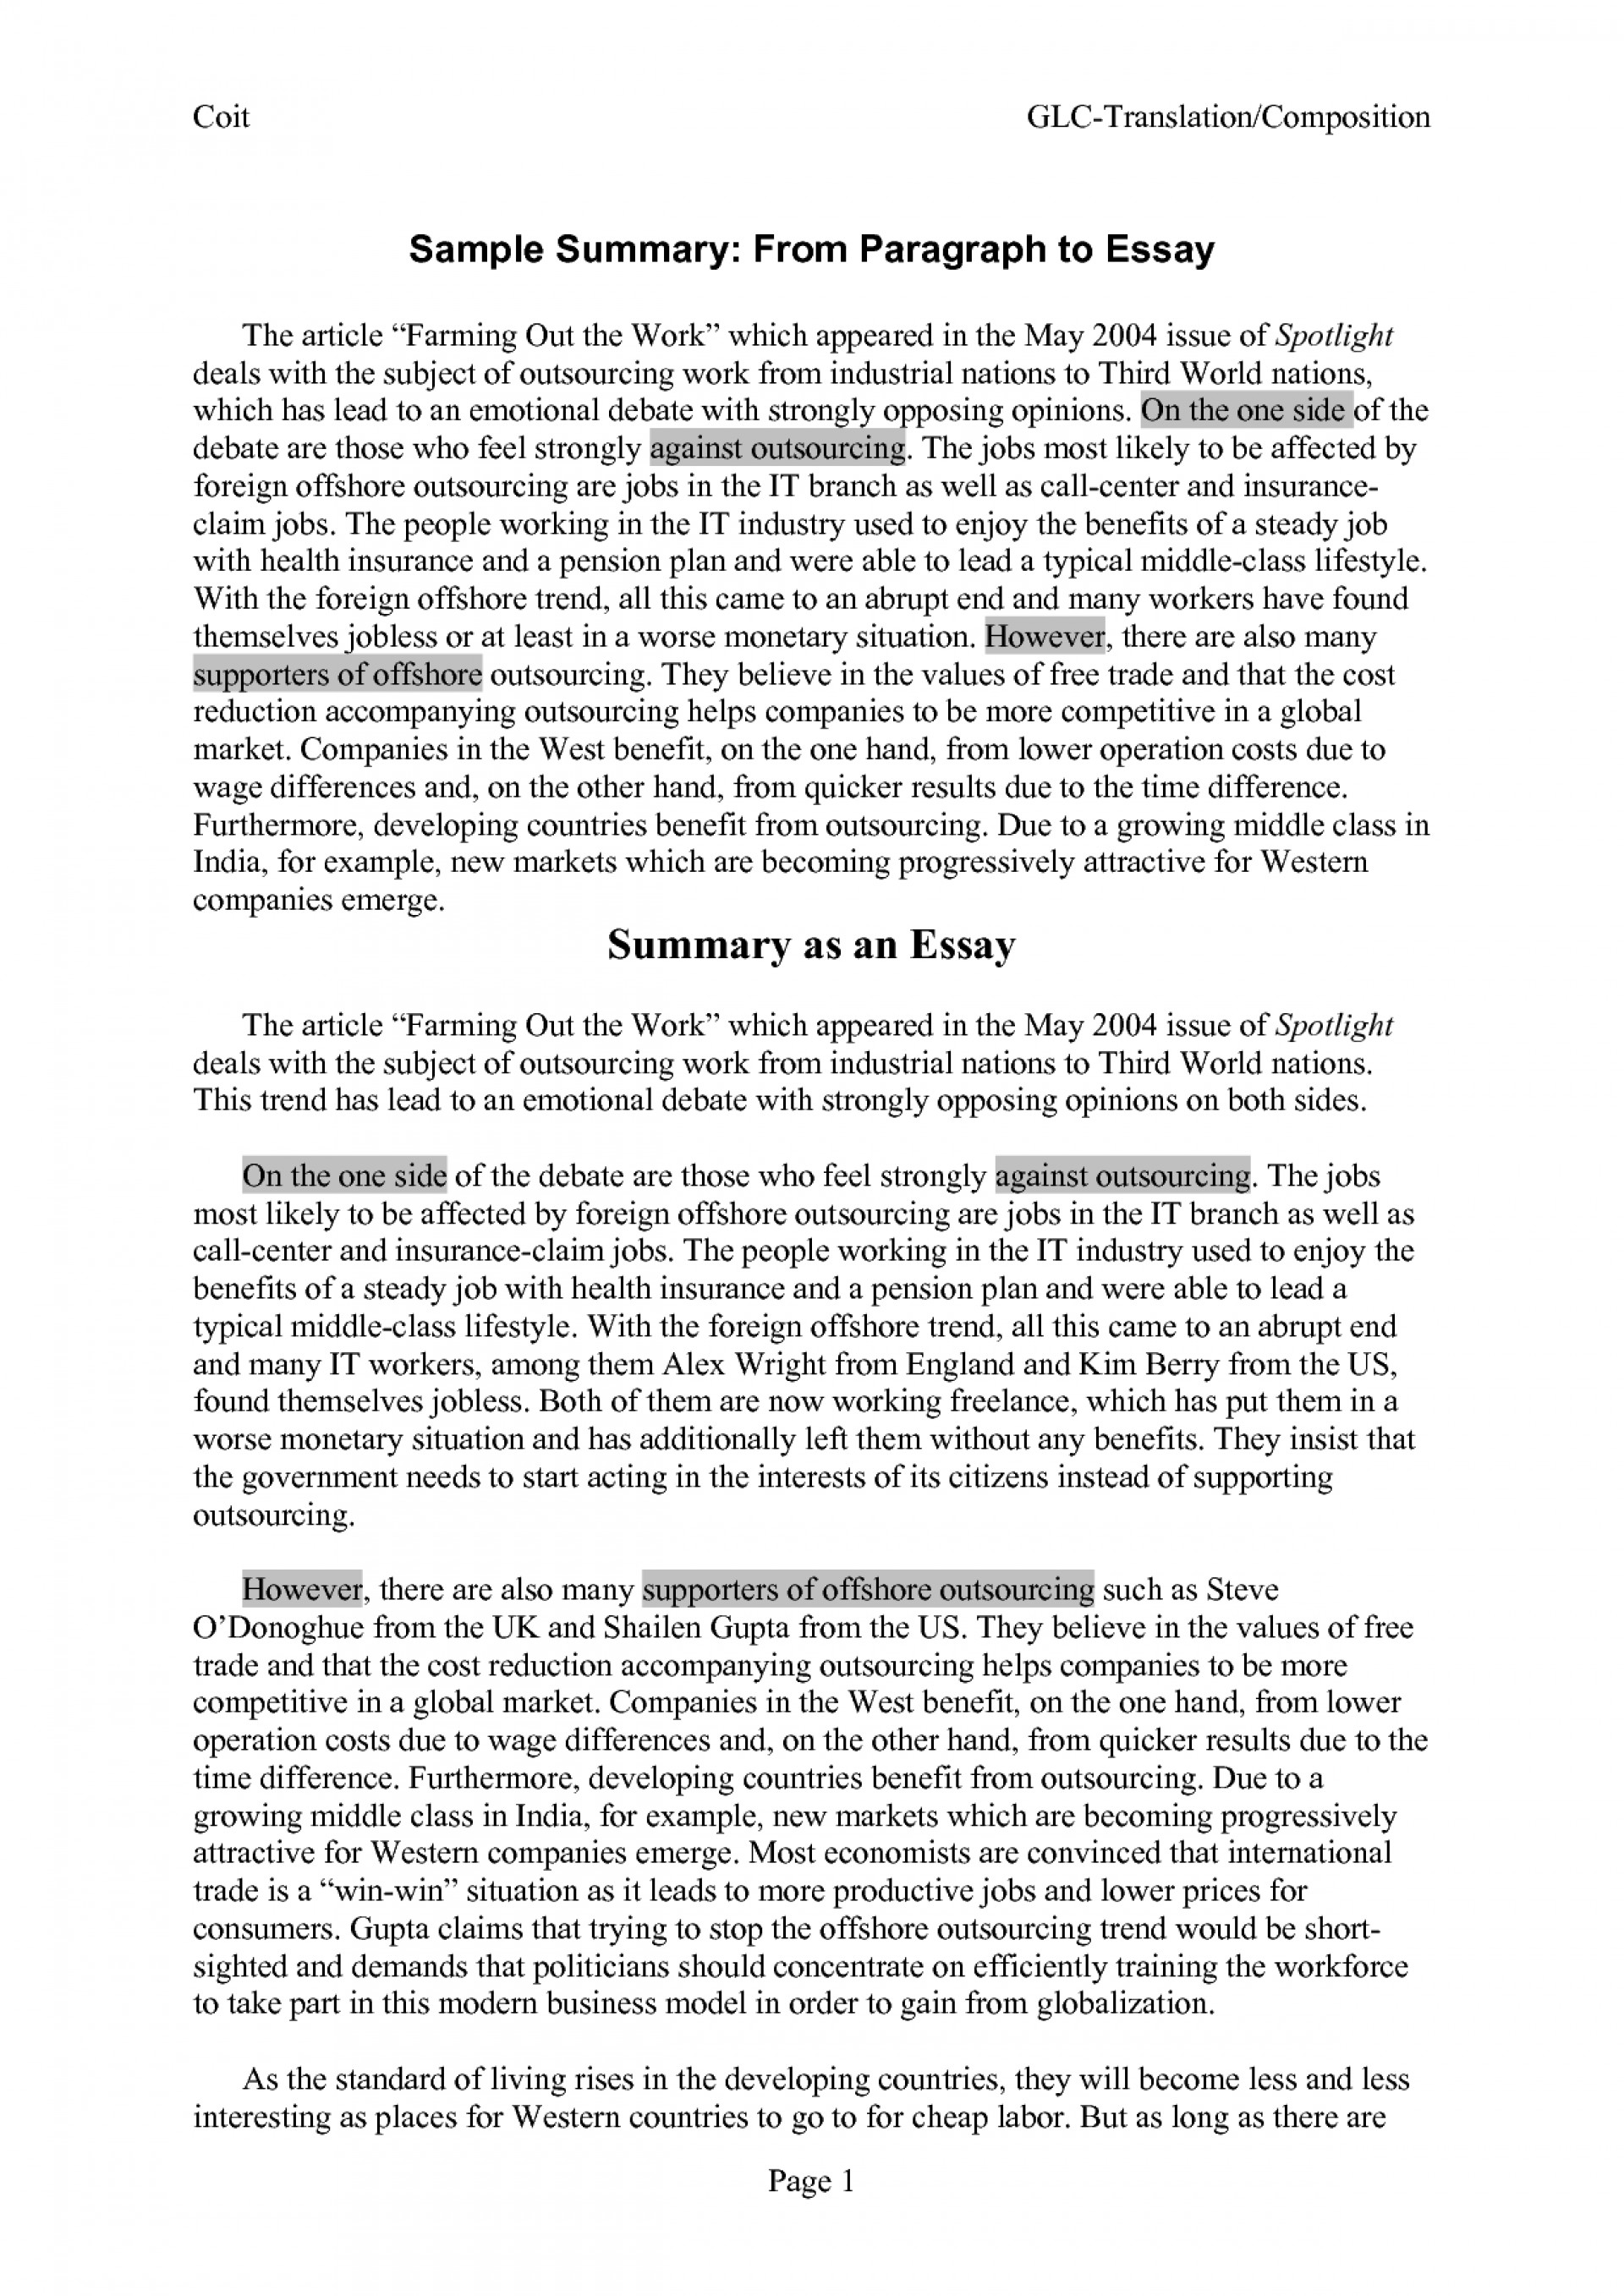 005 Essay Example Sample Summary Papers 248300 Imposing Research Paper Analysis Examples Executive 1920